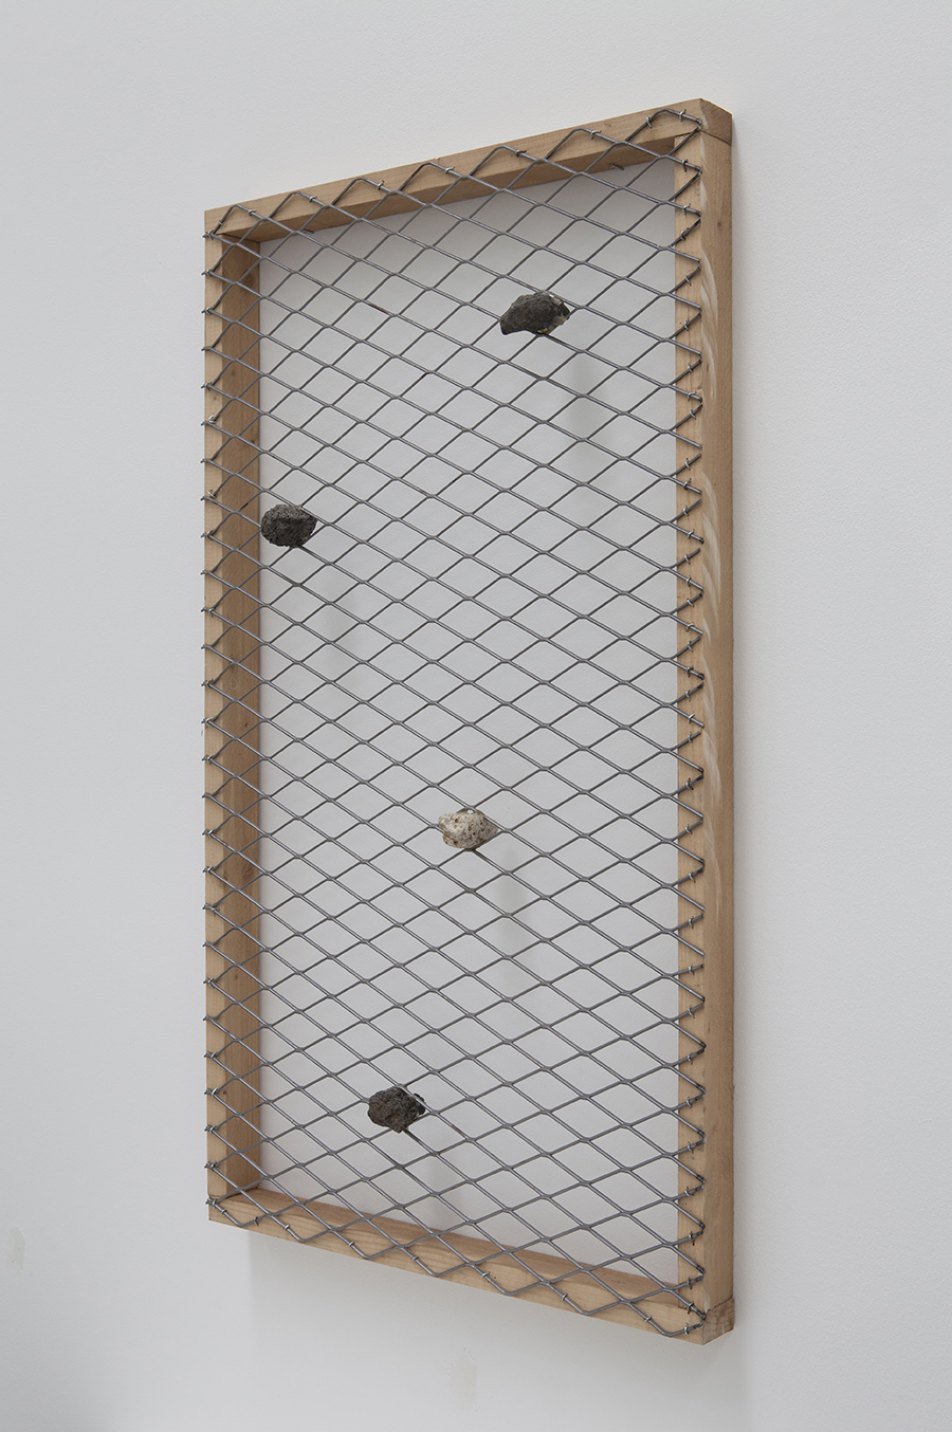 Kishio Suga, <em>Hidden and Connected in Space</em>, 2012, stone, wood, wire mesh, 93,5 × 53,5 × 9 cm - Mendes Wood DM